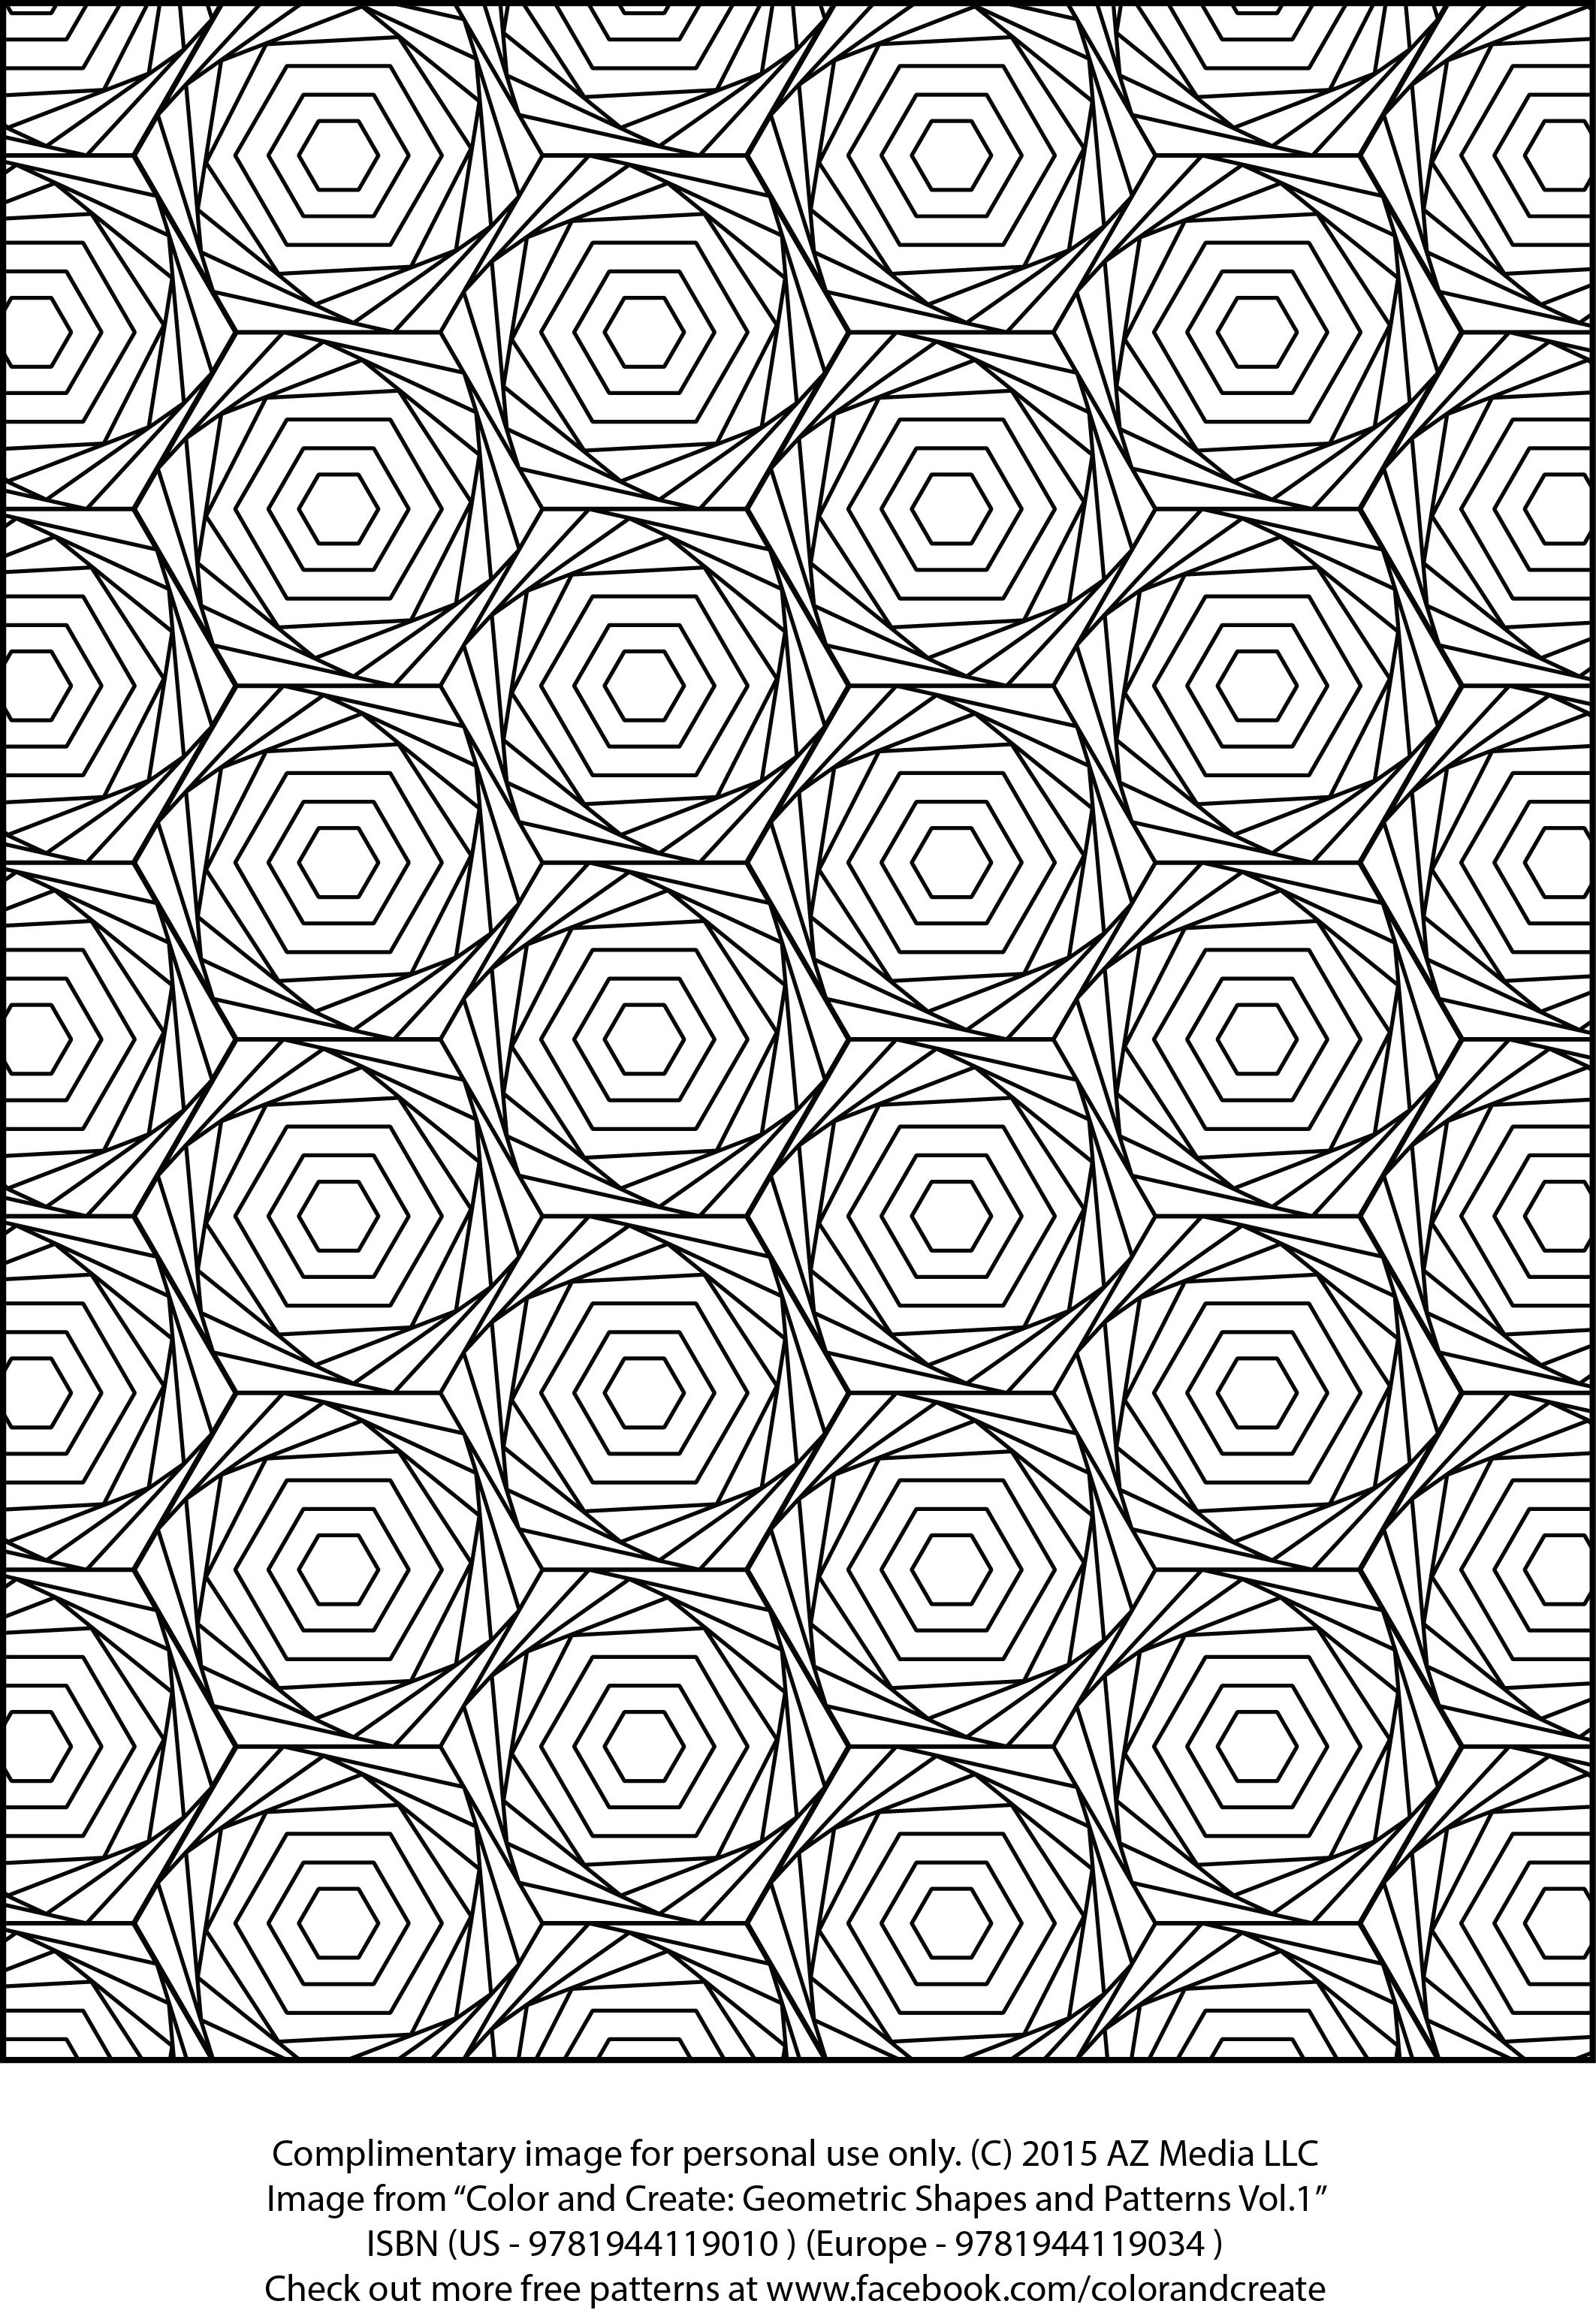 Complimentary Coloring Sheet From Color And Create